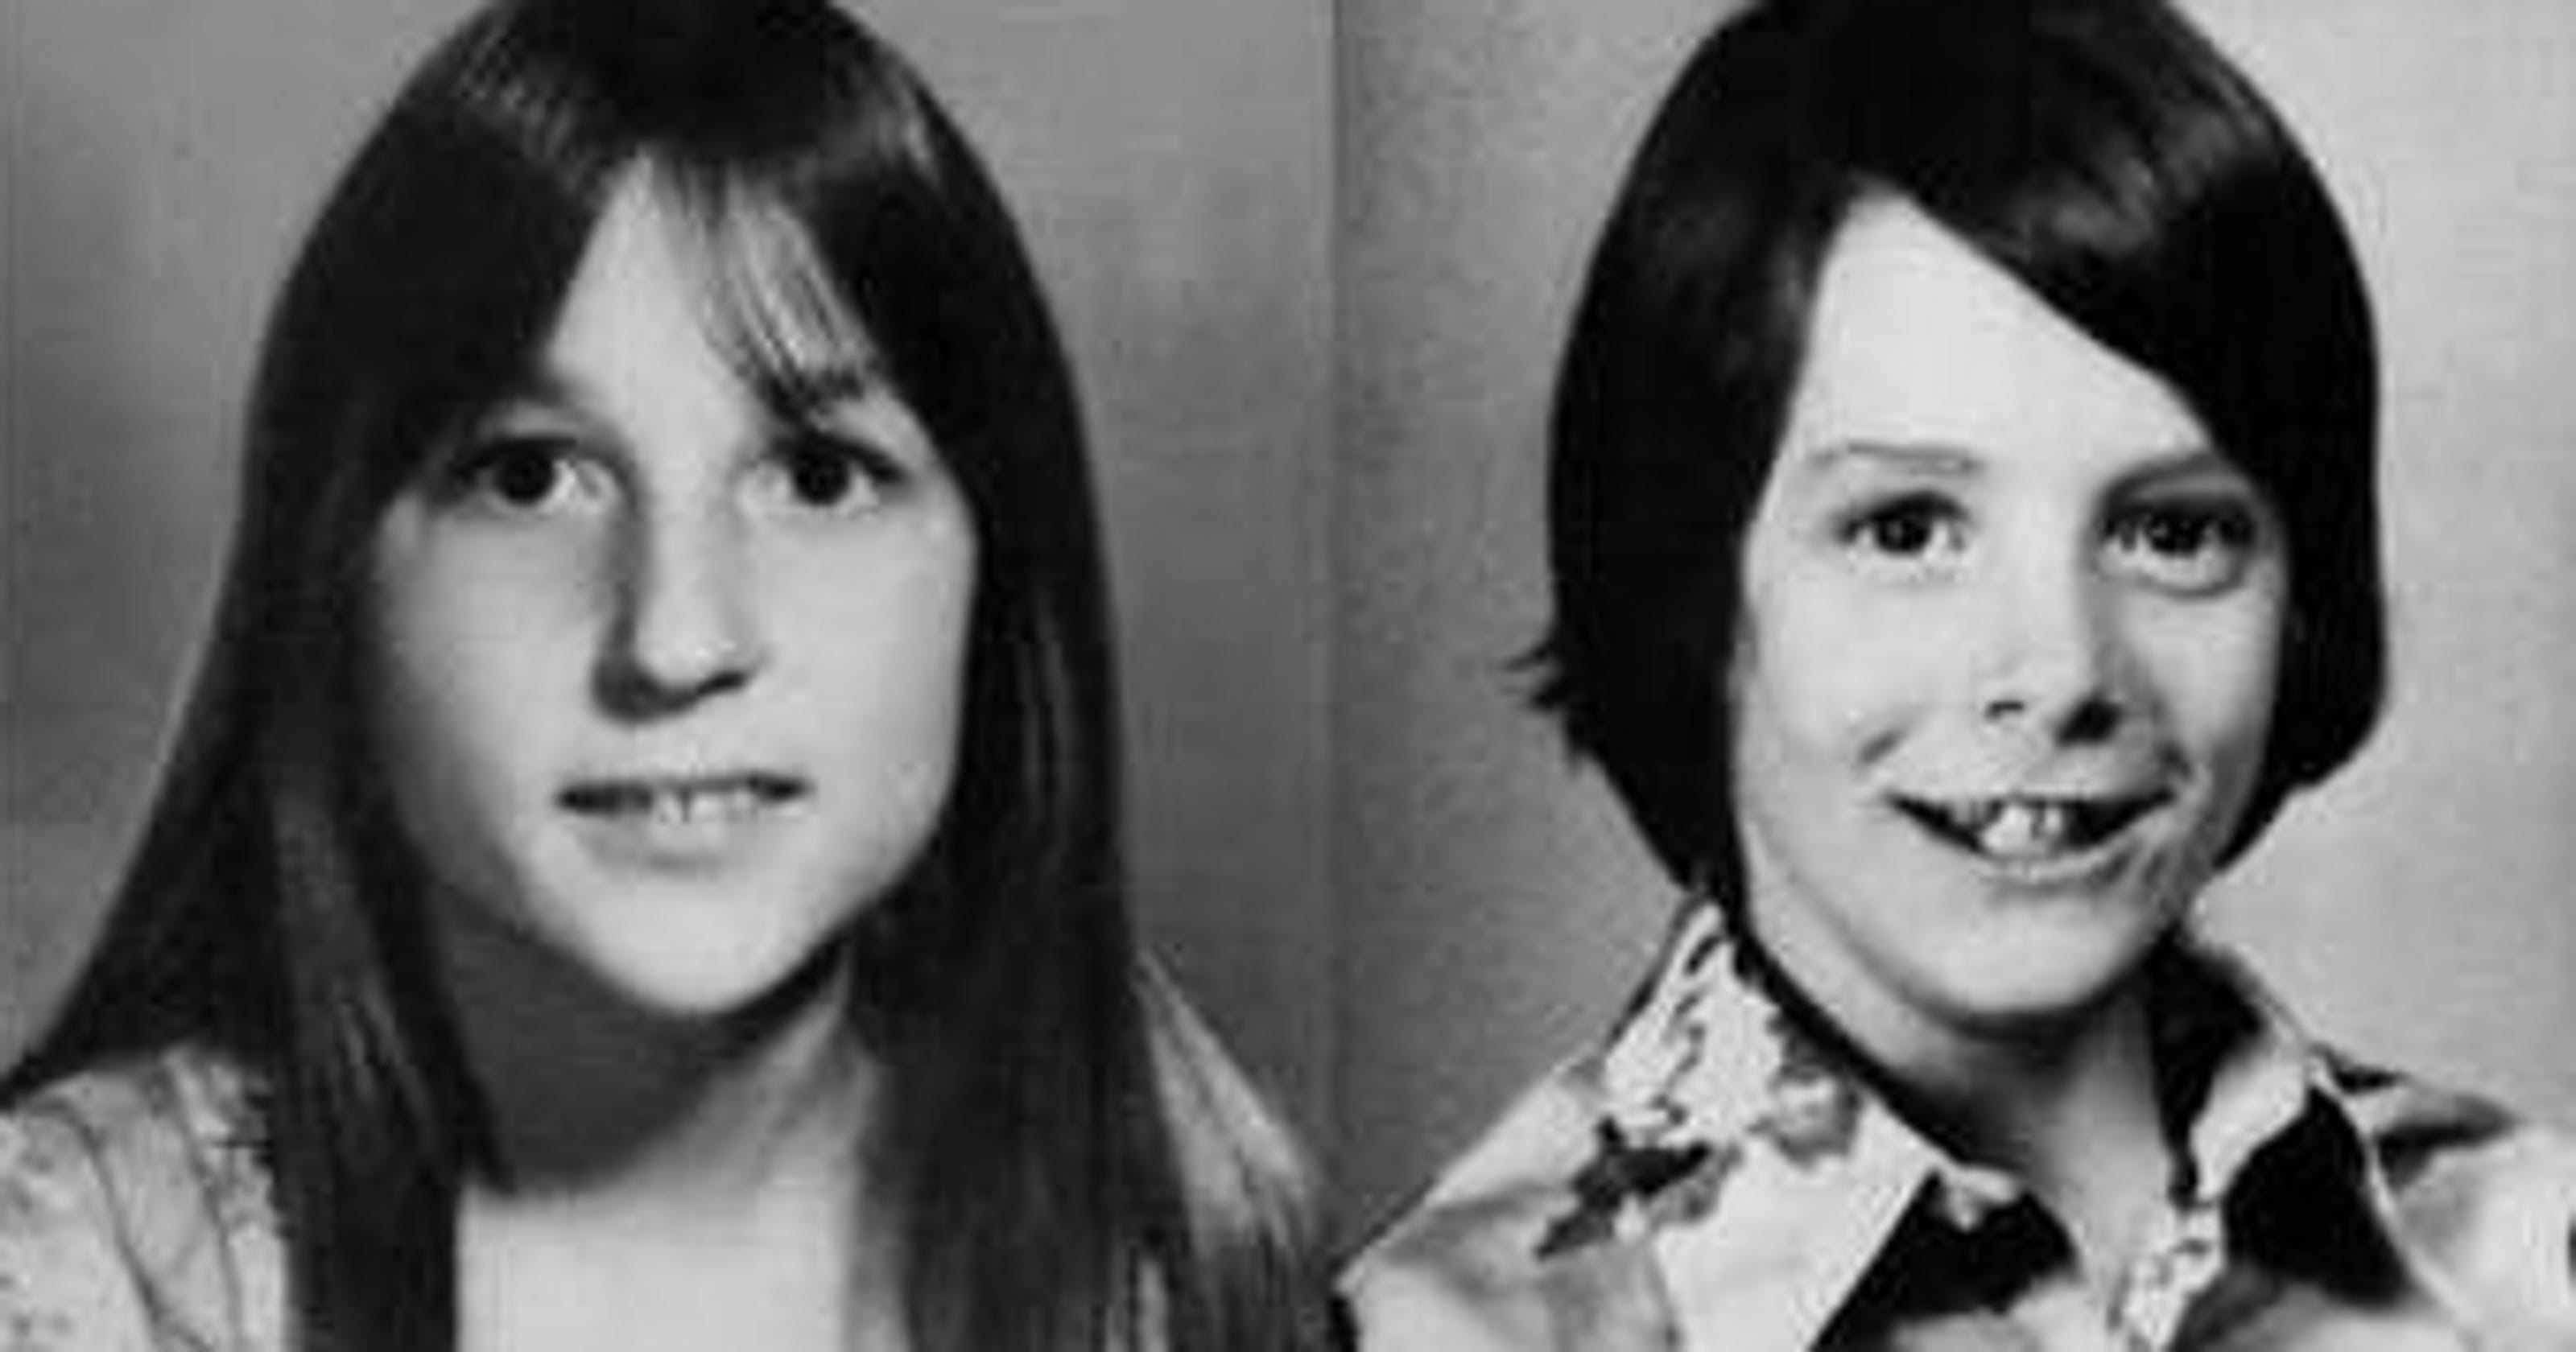 New doubts raised about '70s child killings in Mich